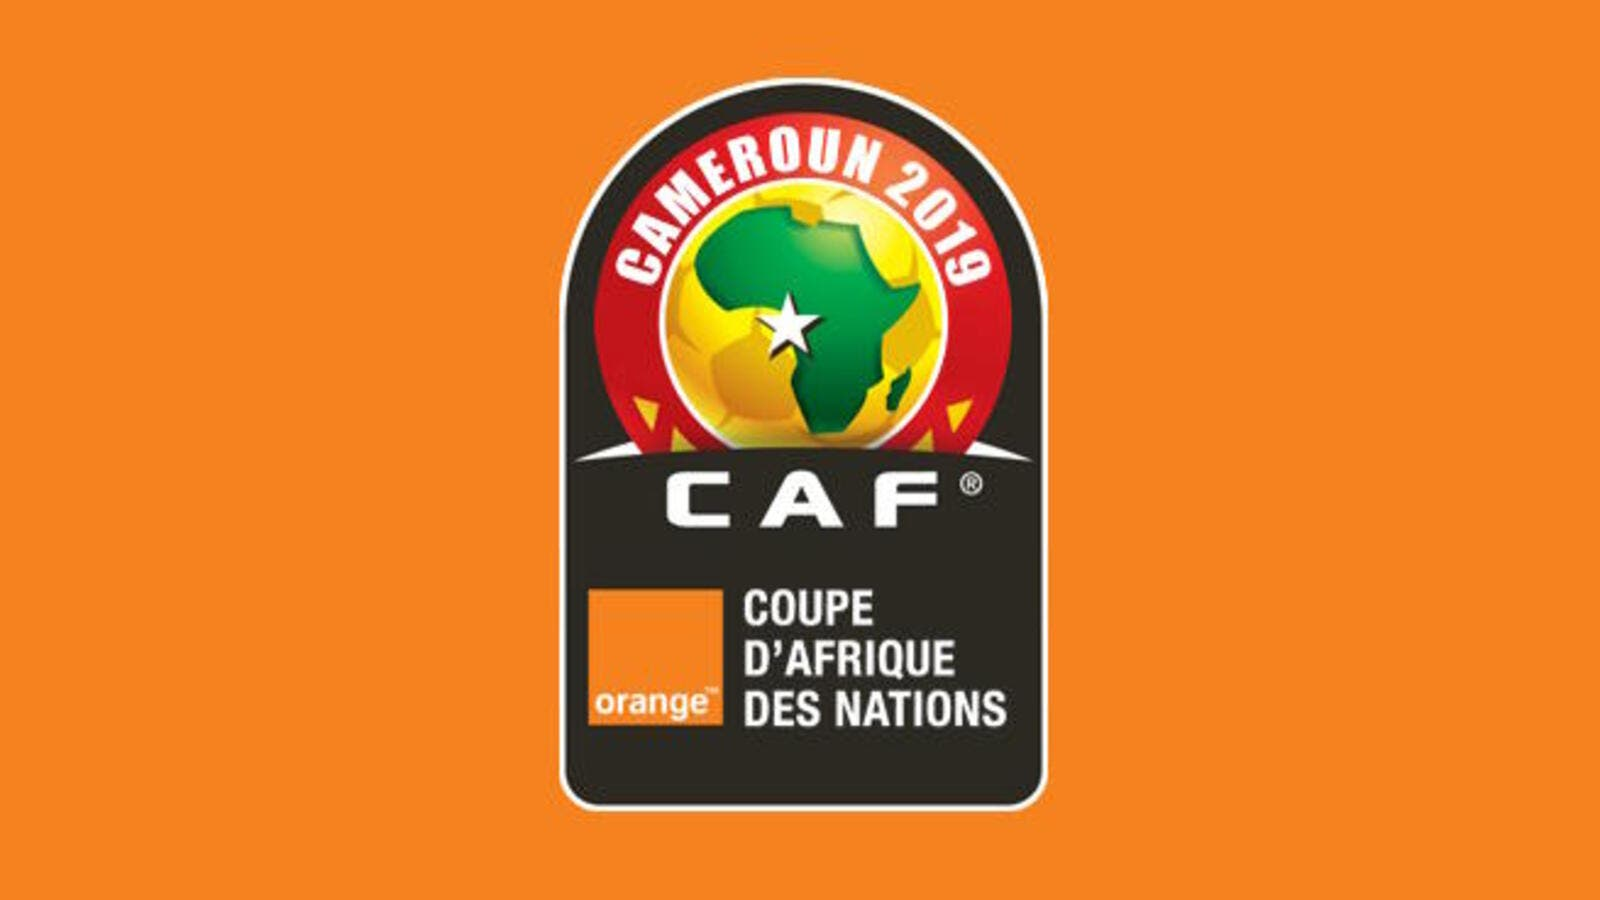 The executive committee of CAF are searching for a new site for next year's expanded Africa Cup of Nations after deeming the original hosts unfit